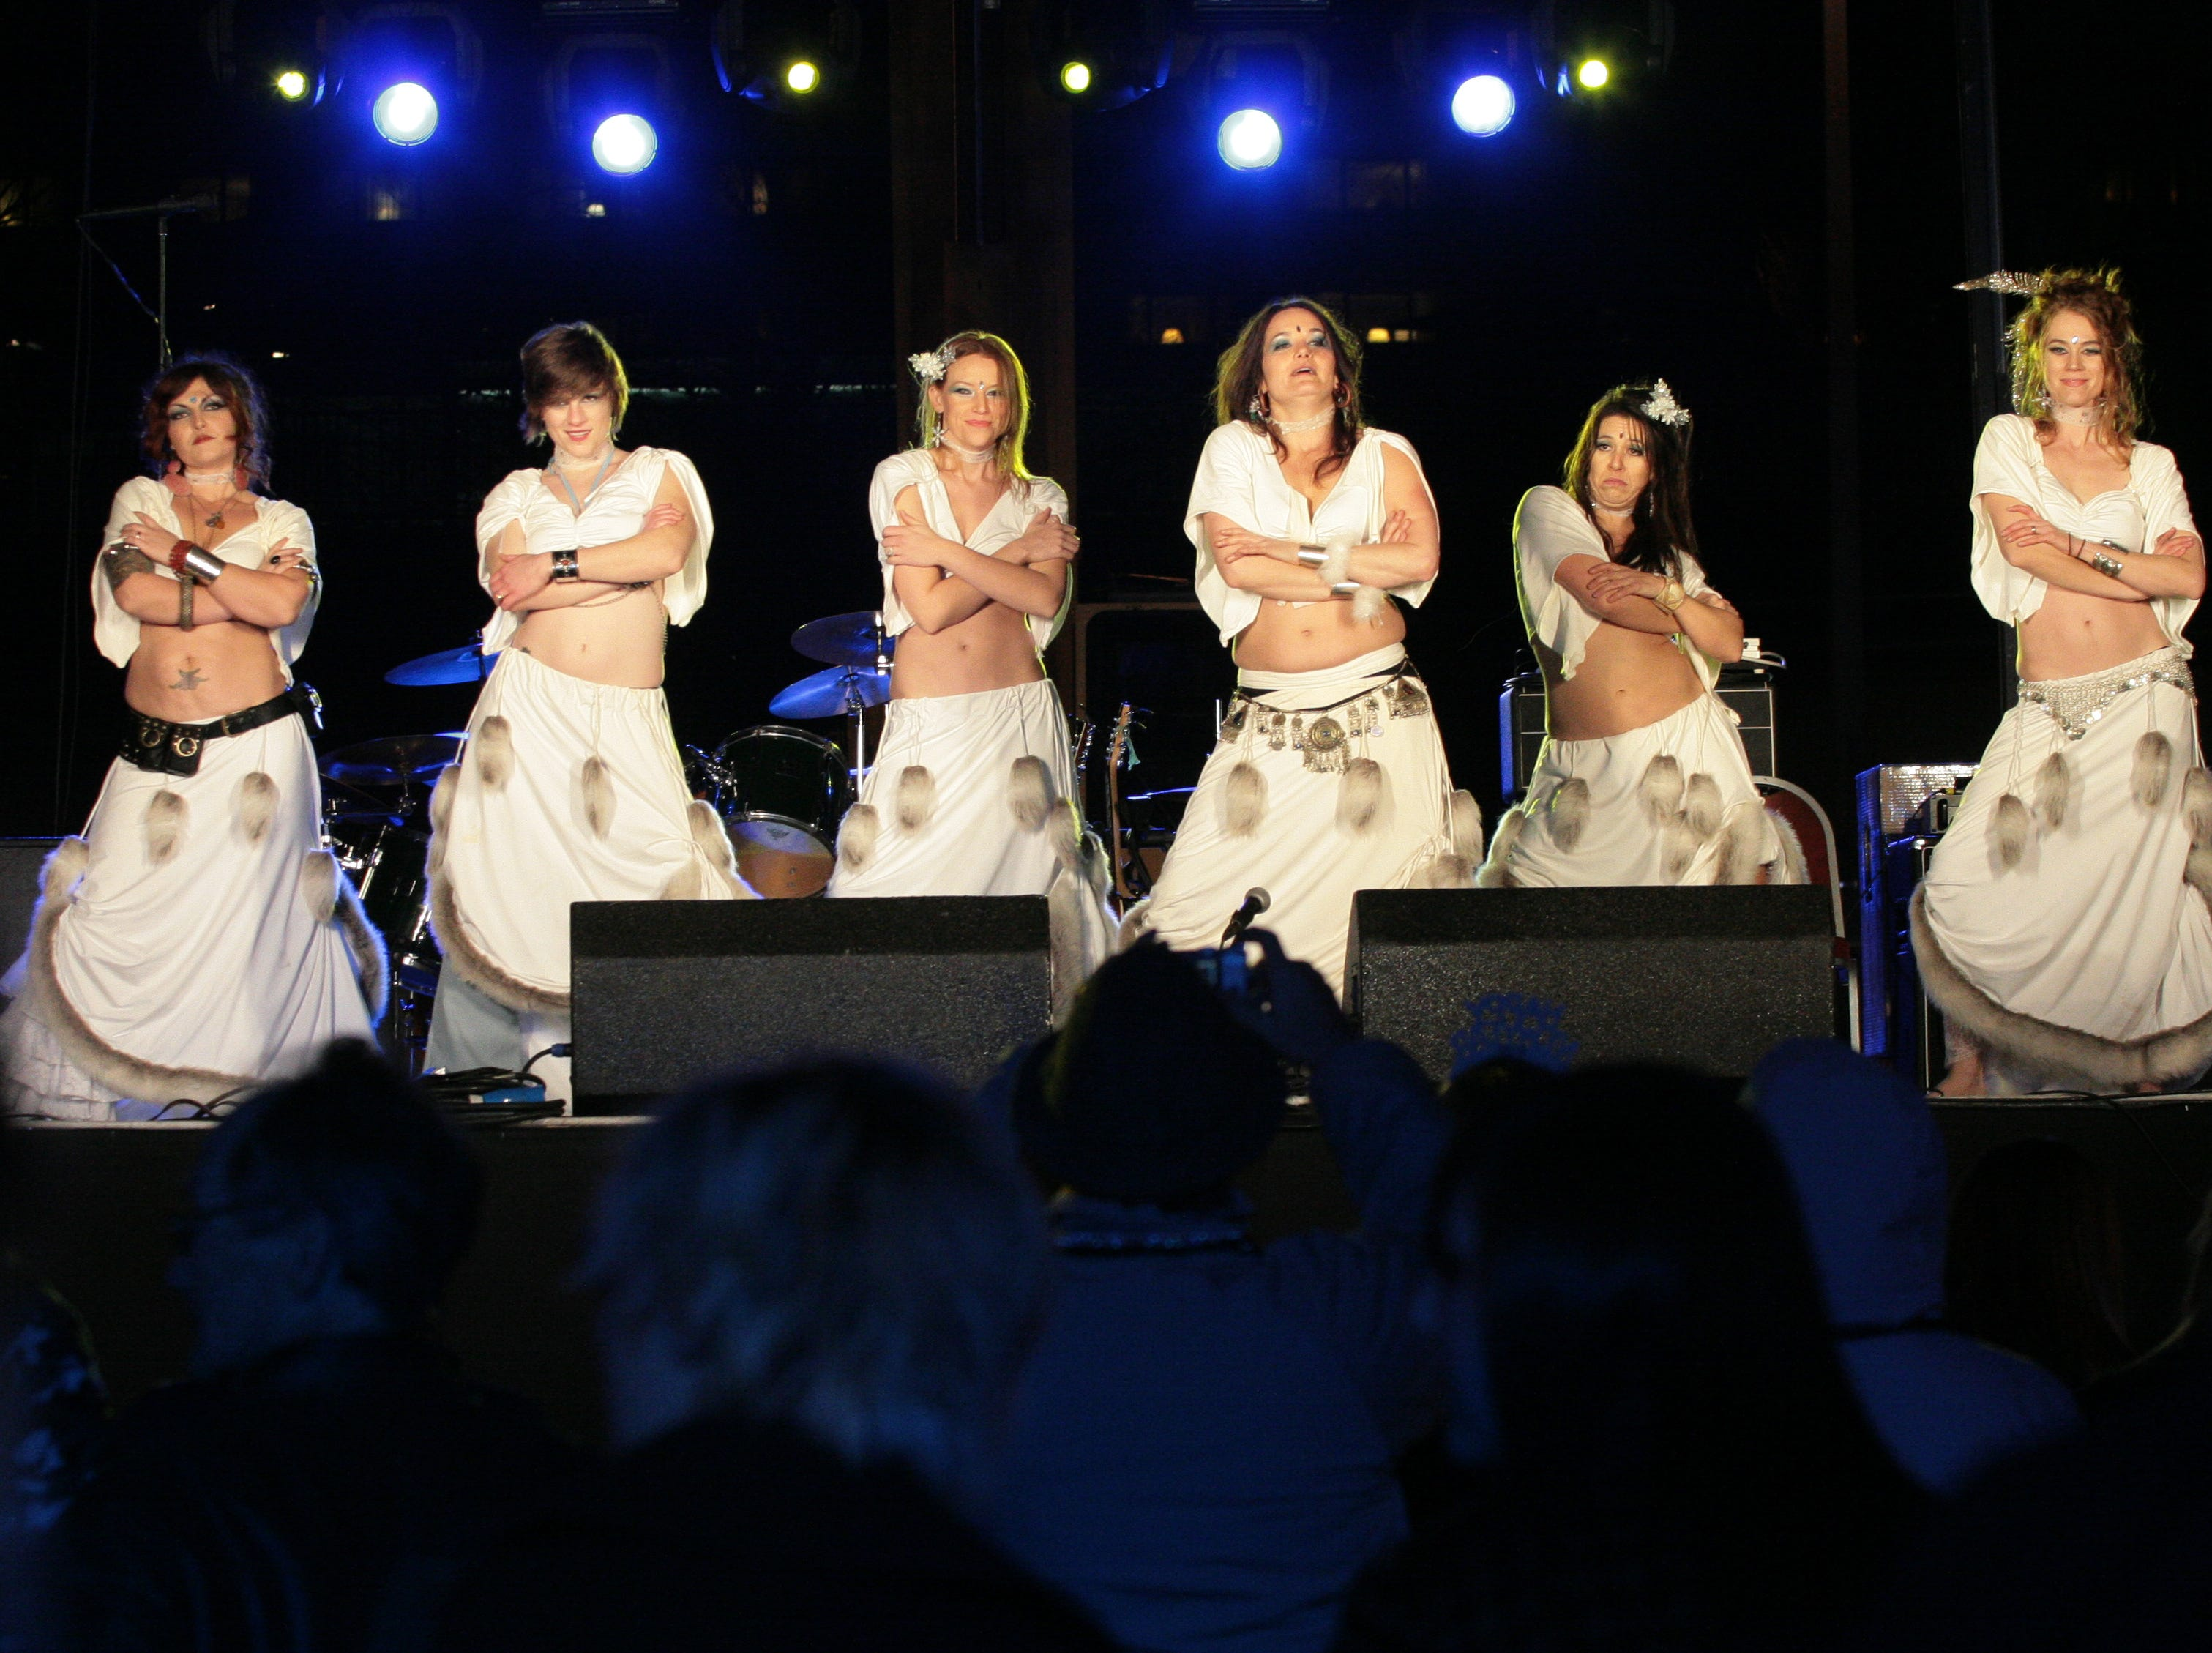 The Gypsy Hands Dance Troup performs during the New Year's eve on Market Square celebration on Monday.